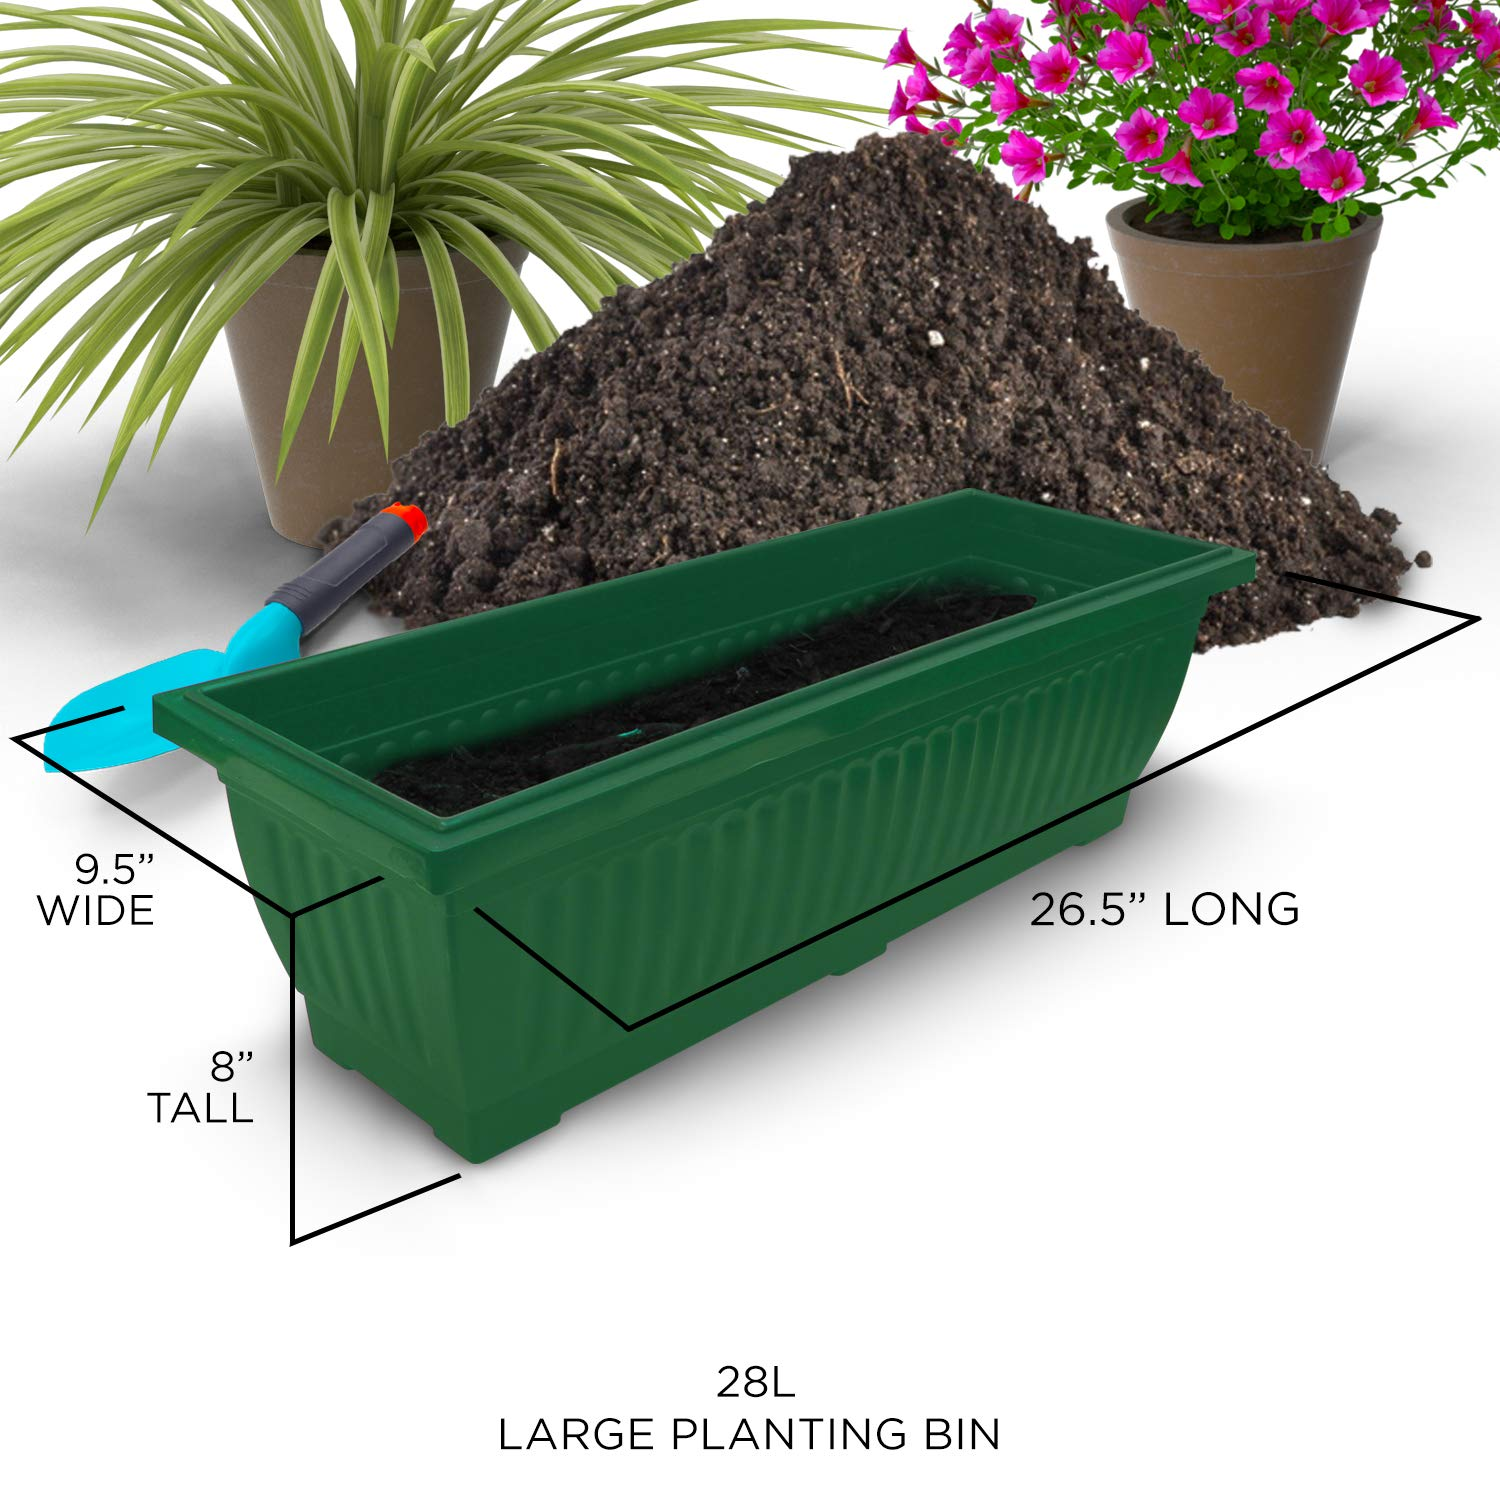 6-Ft Raised Garden Bed - Vertical Garden Freestanding Elevated Planter with 4 Container Boxes - Good for Patio or Balcony Indoor and Outdoor - Cascading Water Drainage (1-Pack/Forest Green) by Outland Living (Image #5)